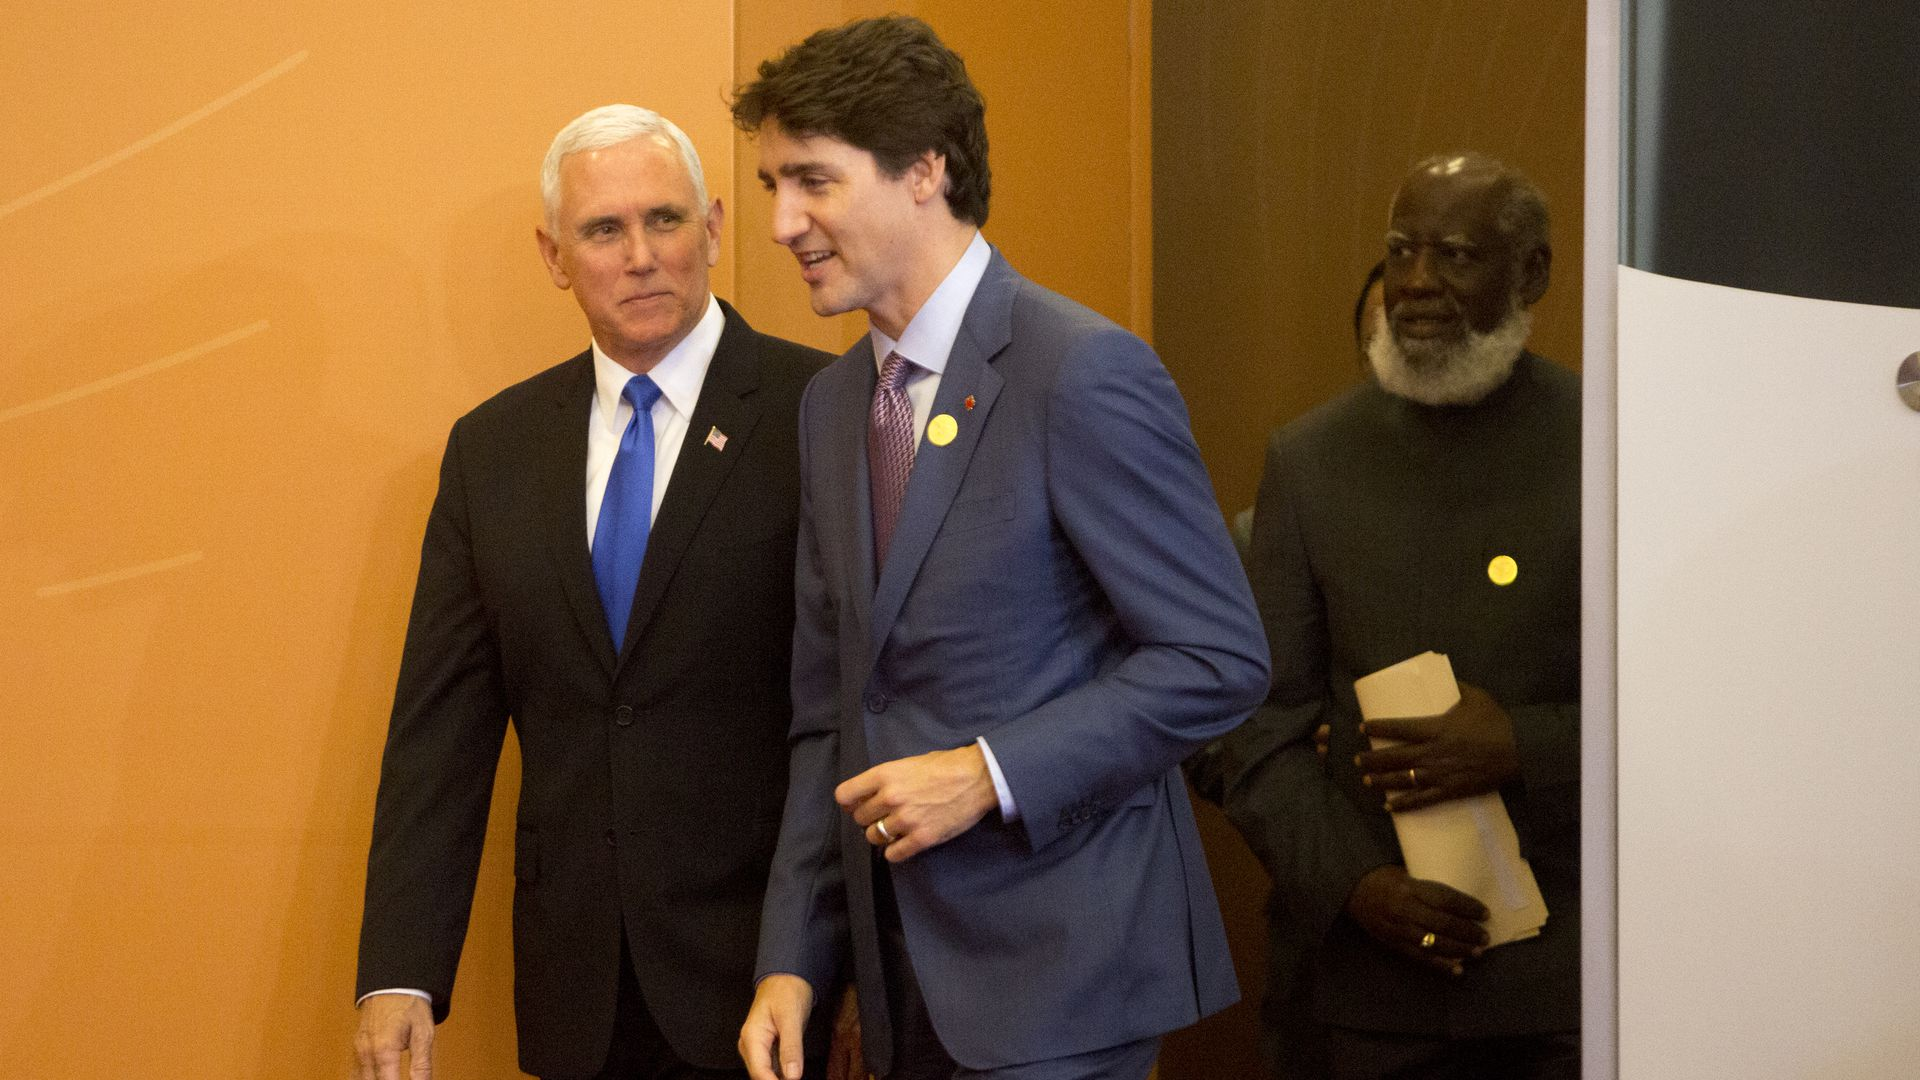 US Vice President Mike Pence and talks with President of Canada Justin Trudeau in 2018.